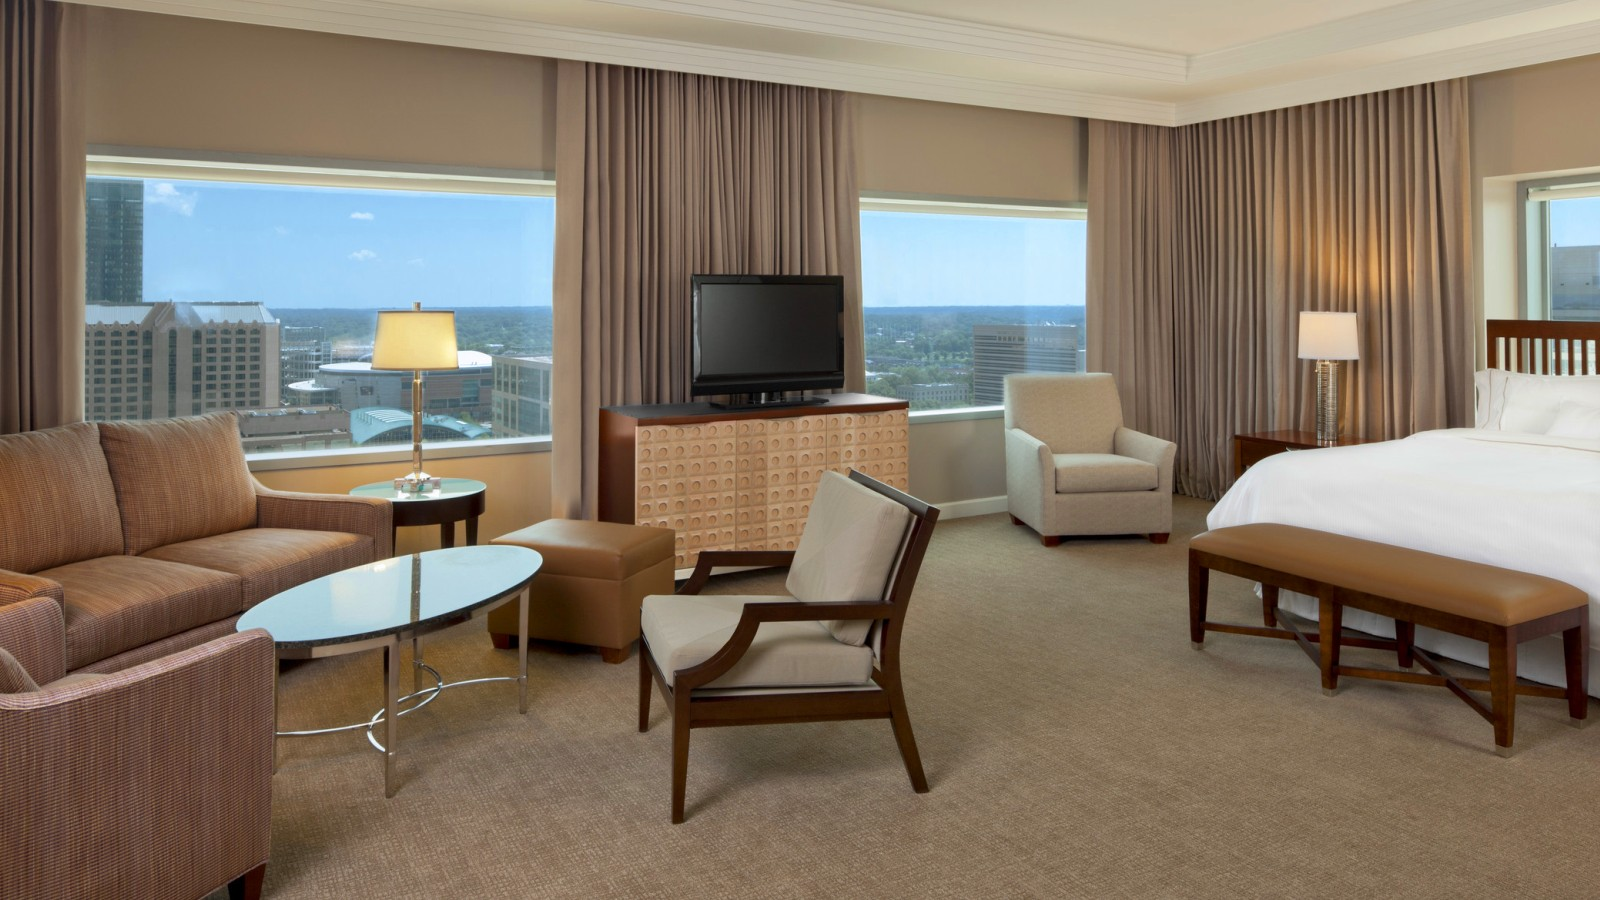 The Presidential Suite at the Westin, Charlotte